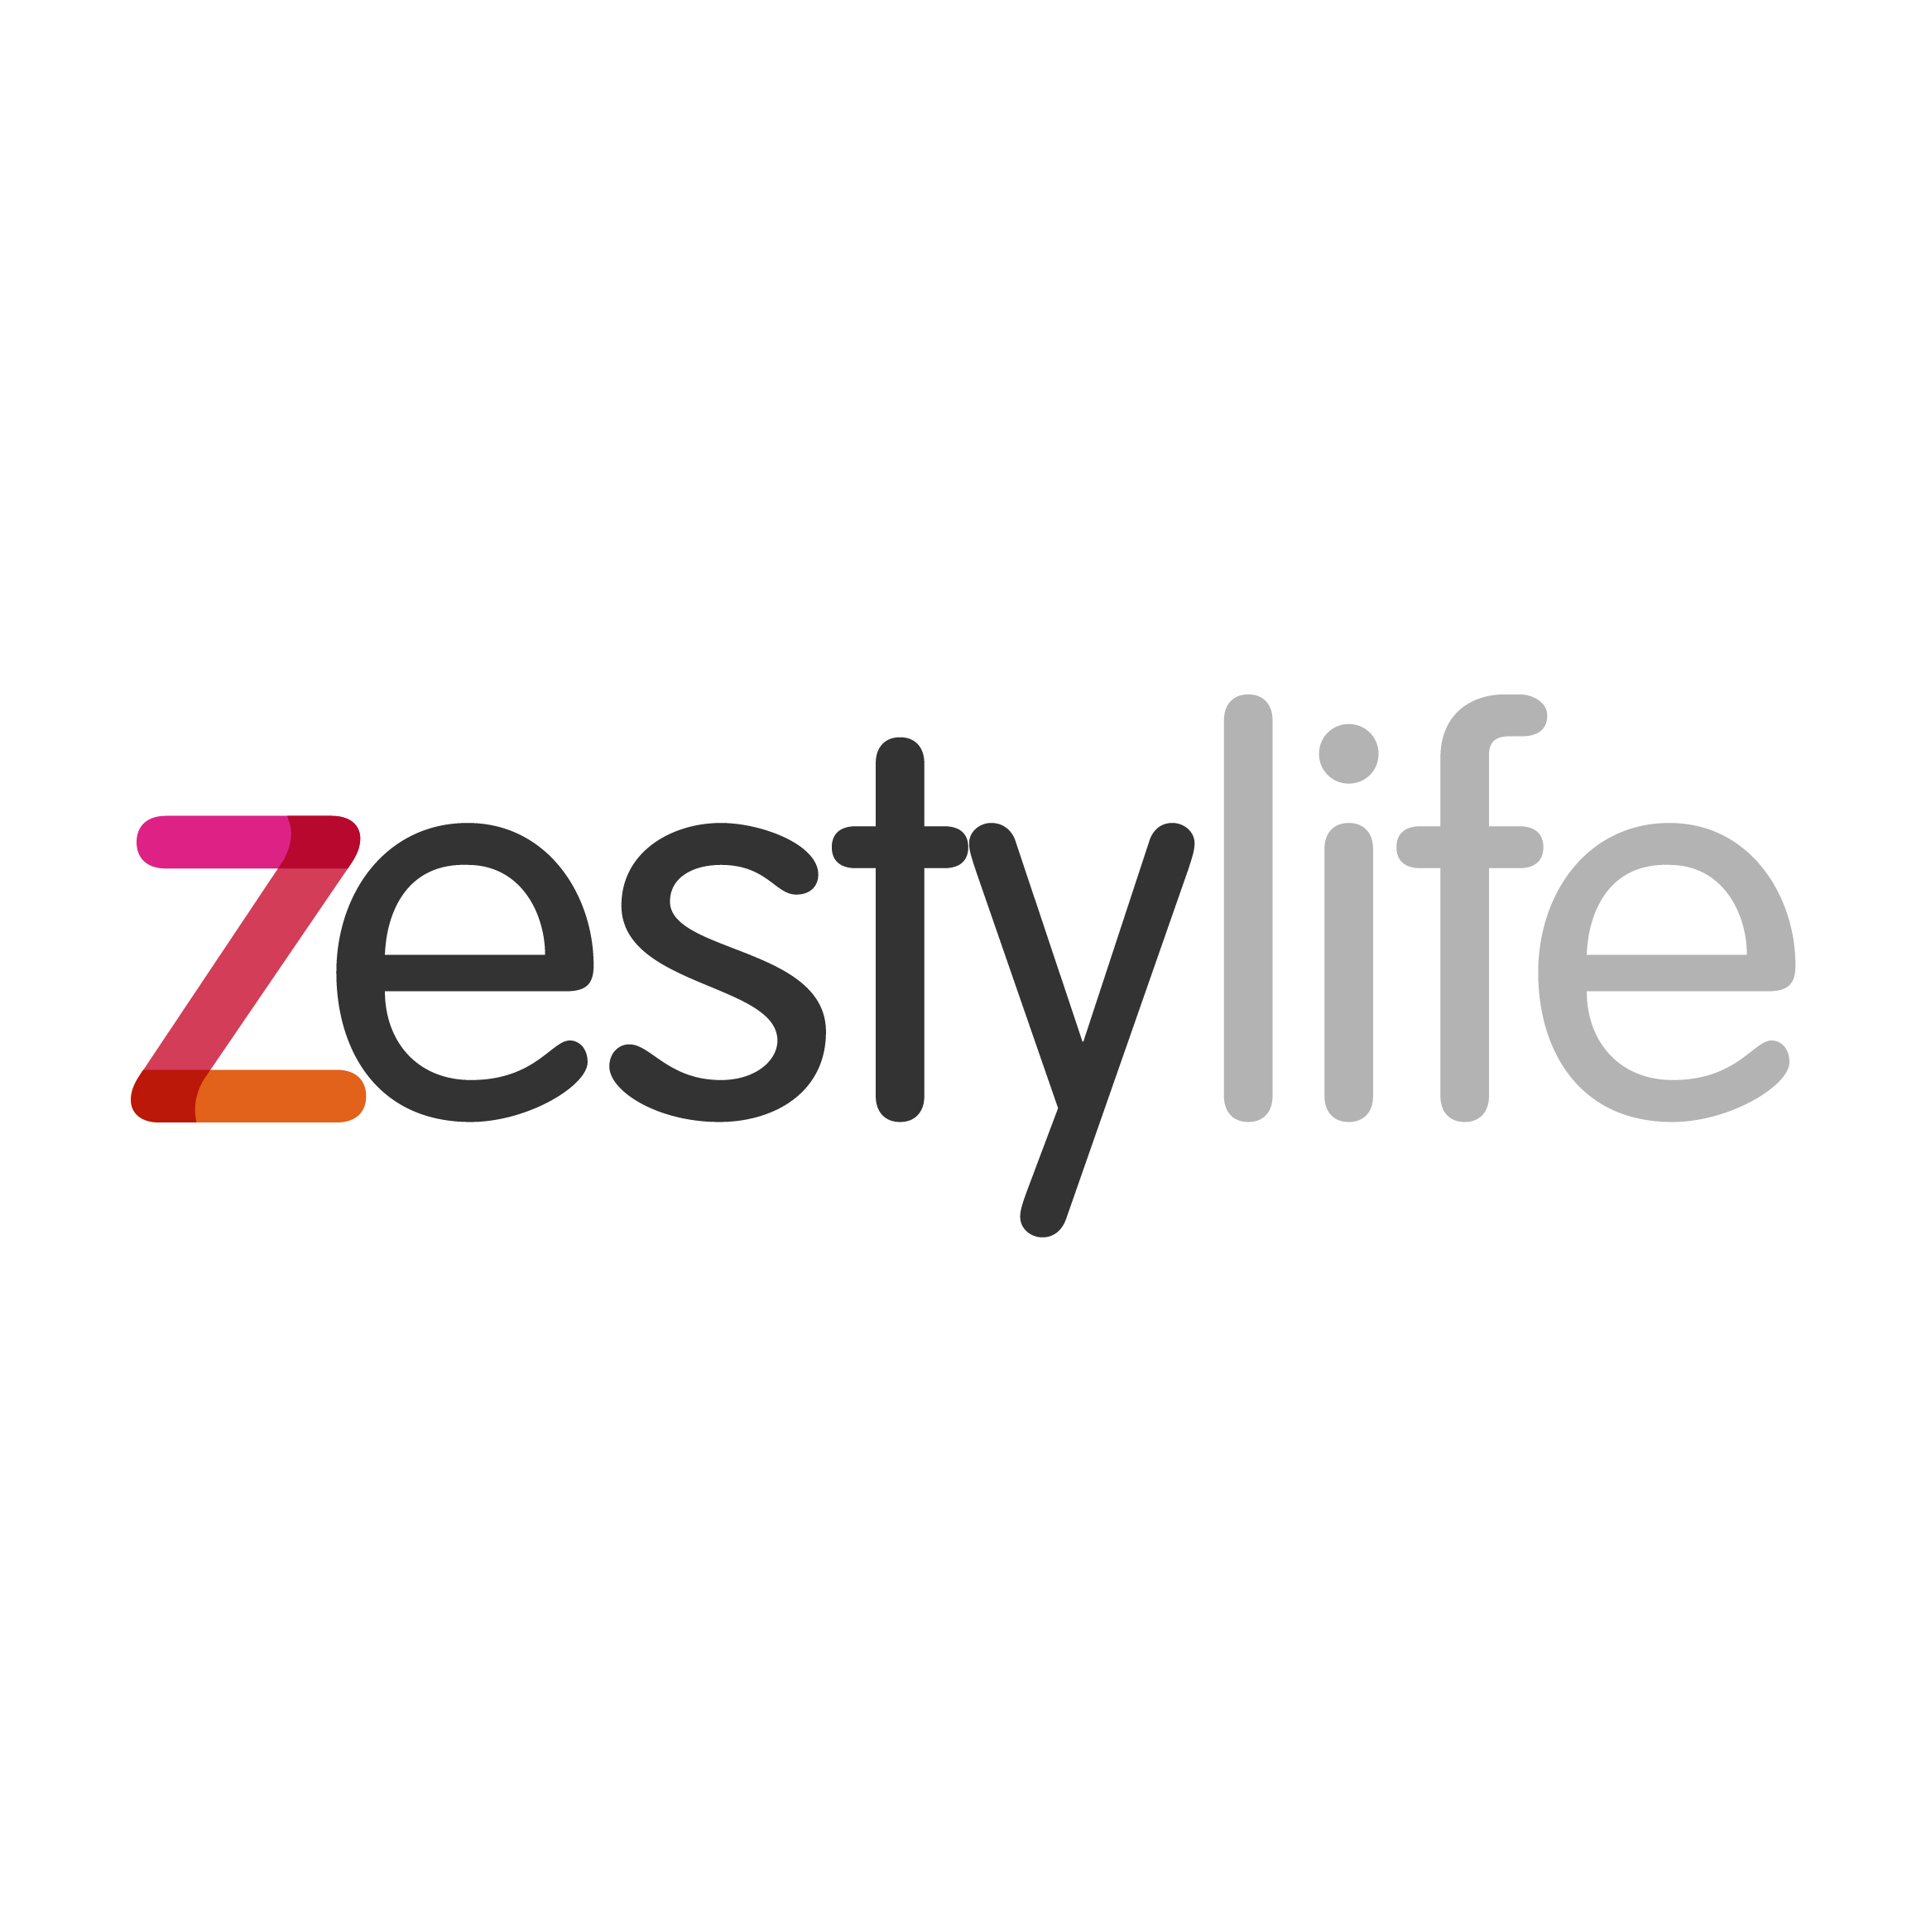 Zestylife - Social Network Development   Concept, strategy and brand development of a social network where patients and doctors connect to achieve personal goals and a healthy lifestyle.